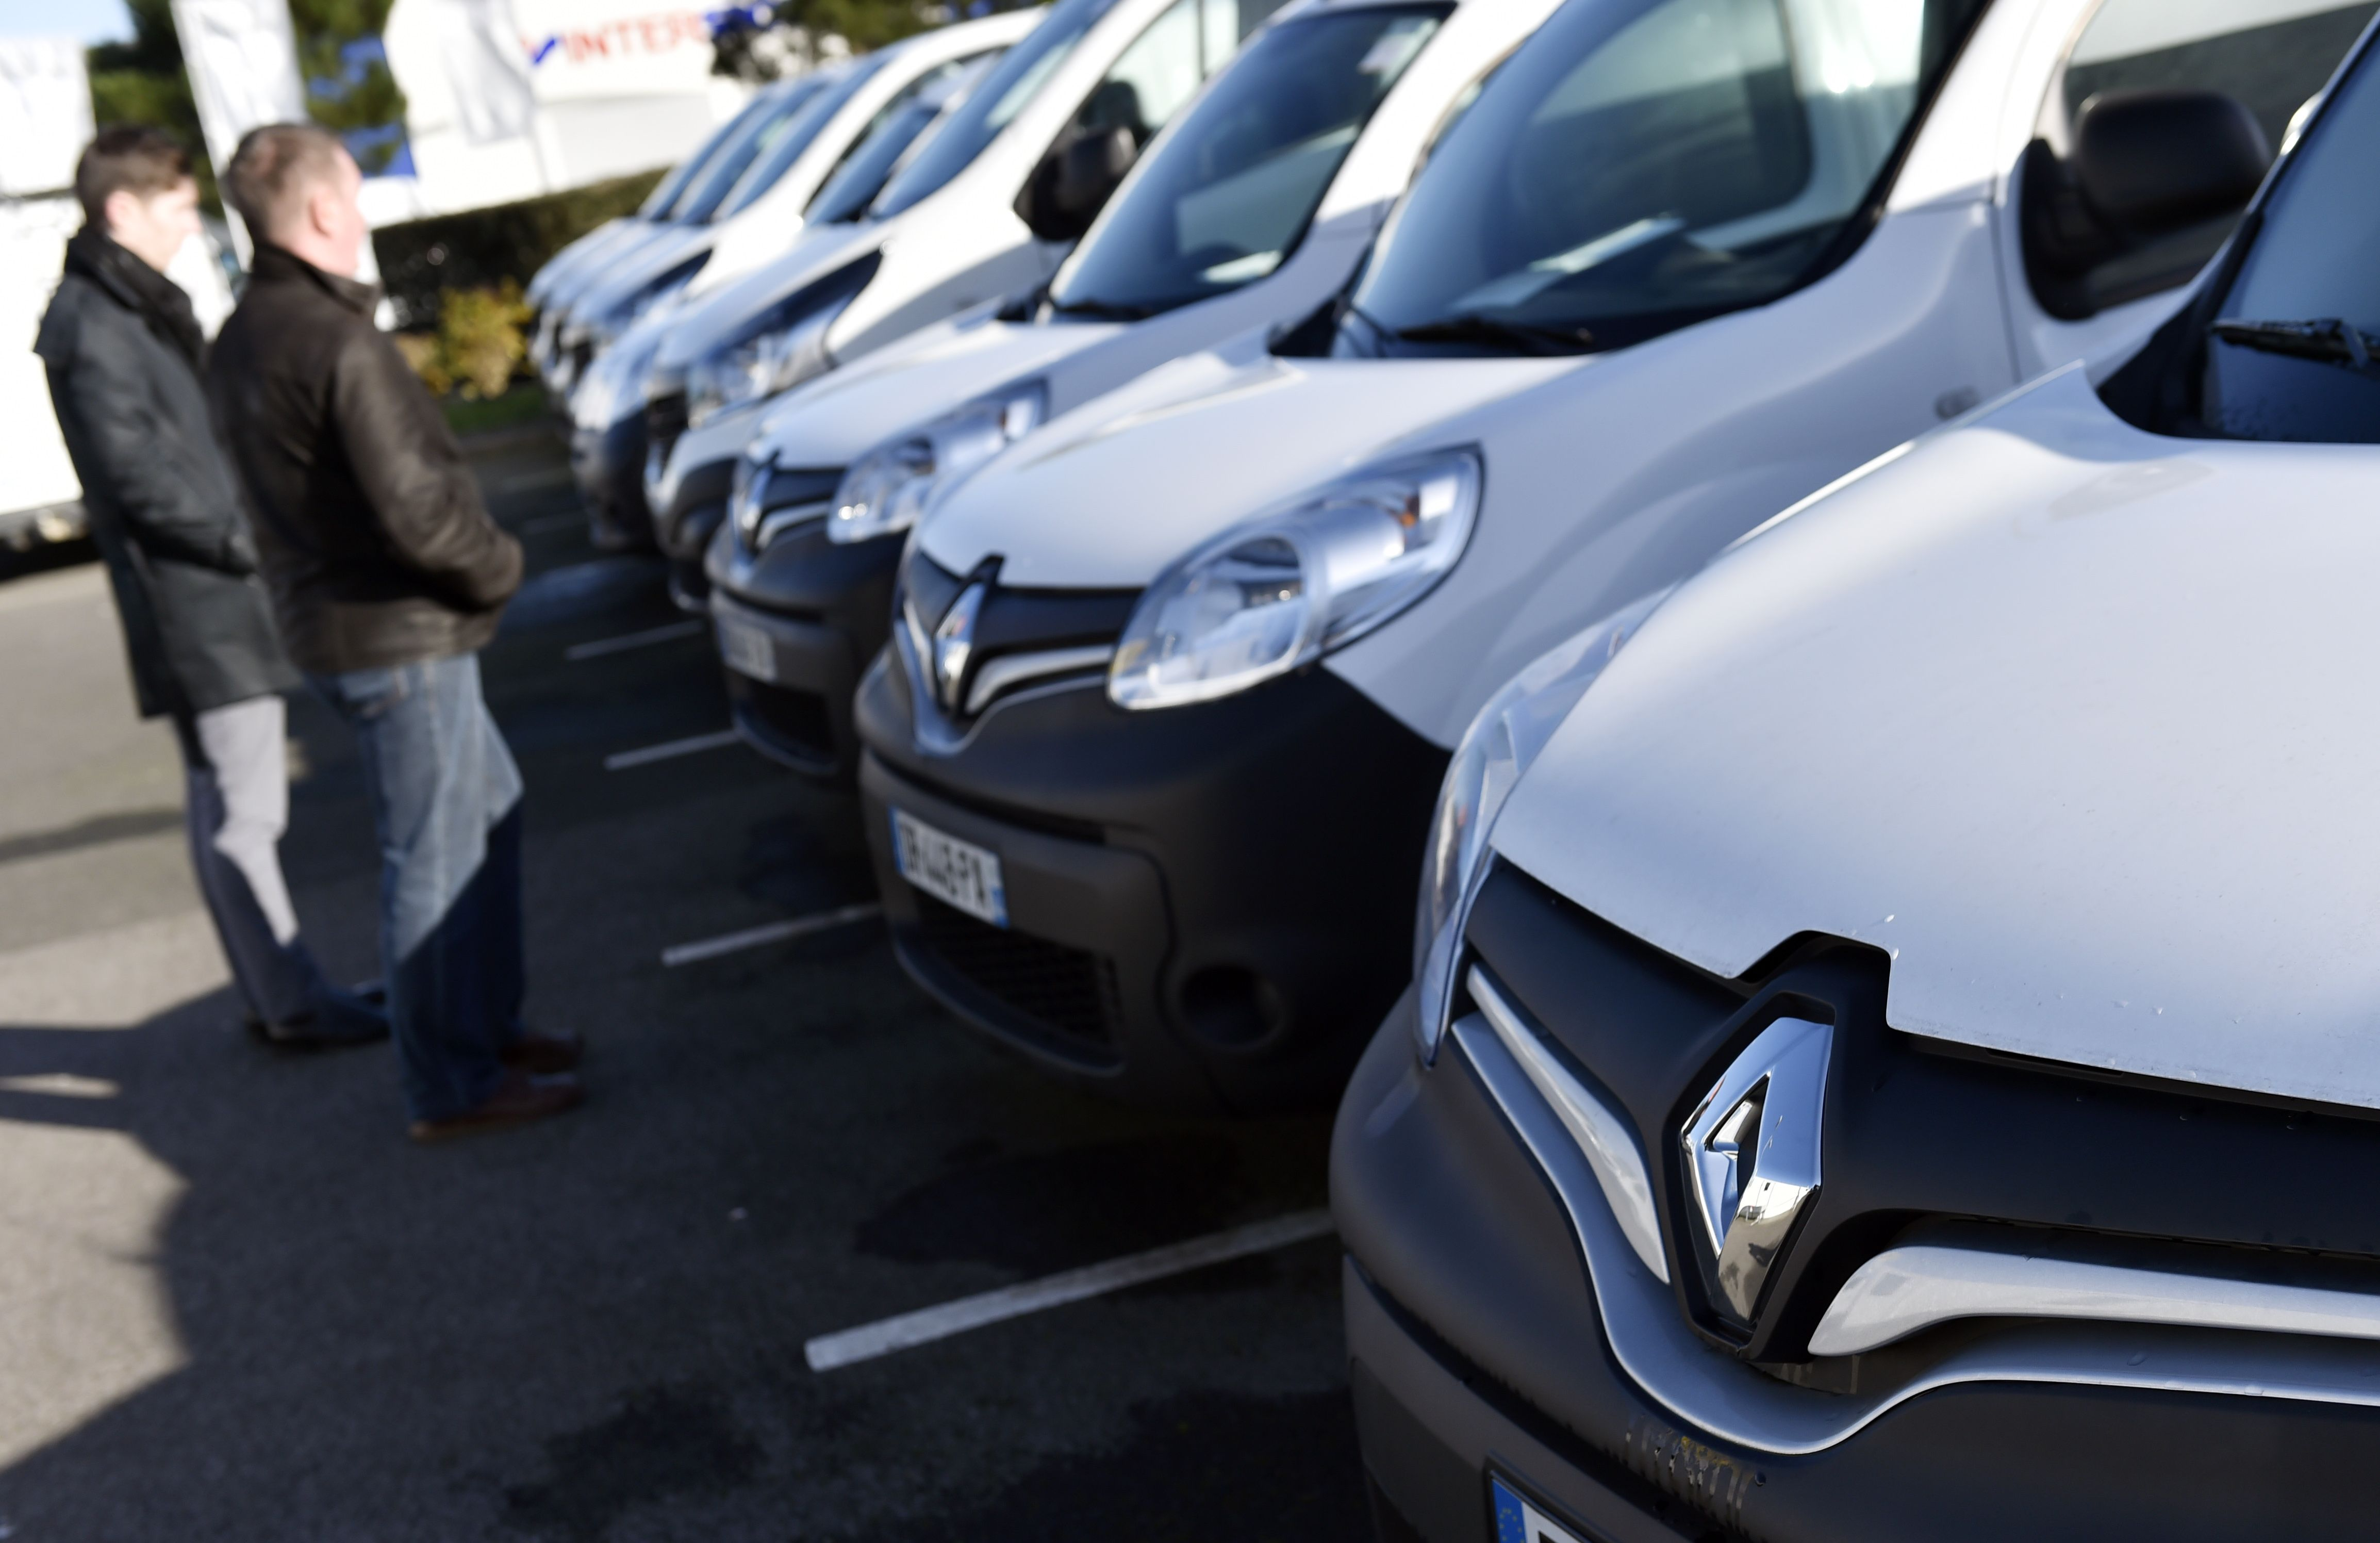 Renault's profit plunged 99% last year. Nissan was only partly to blame